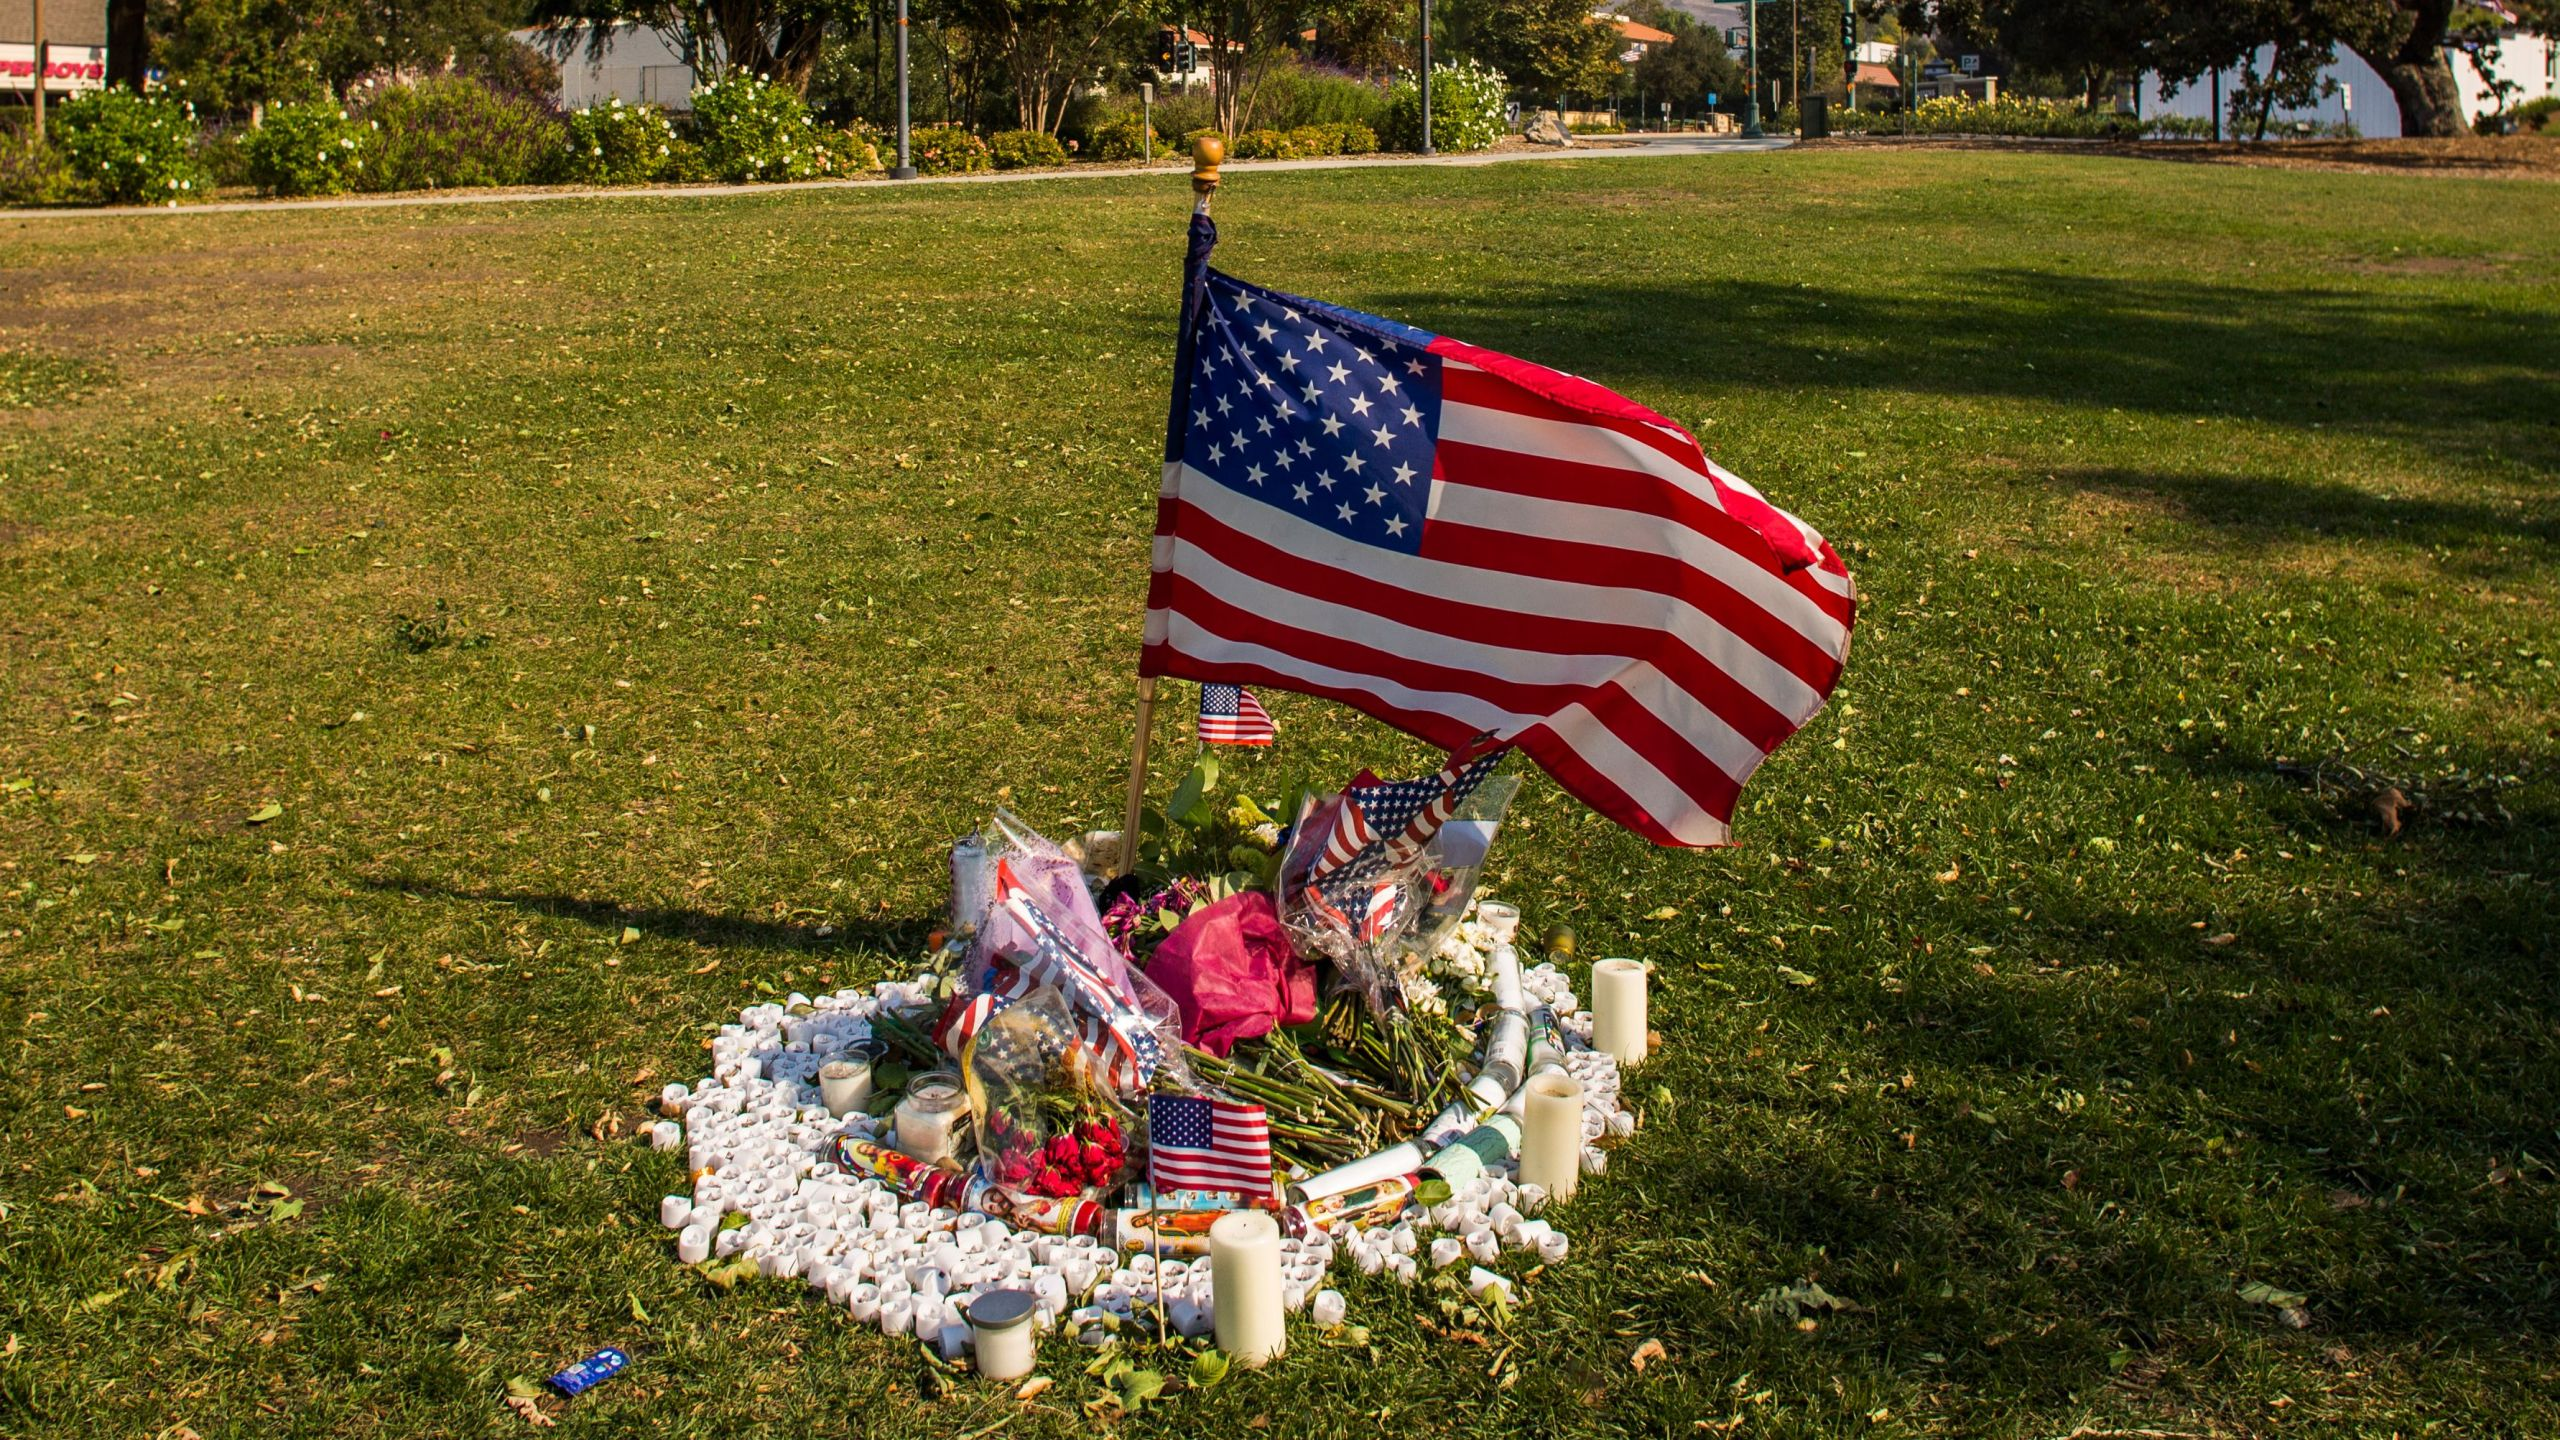 Flowers and candles are left in front of Thousands Oaks City Hall in tribute to the victims of the Borderline Bar & Grill mass shooting in Thousands on November 09, 2018. (Credit: APU GOMES/AFP/Getty Images)